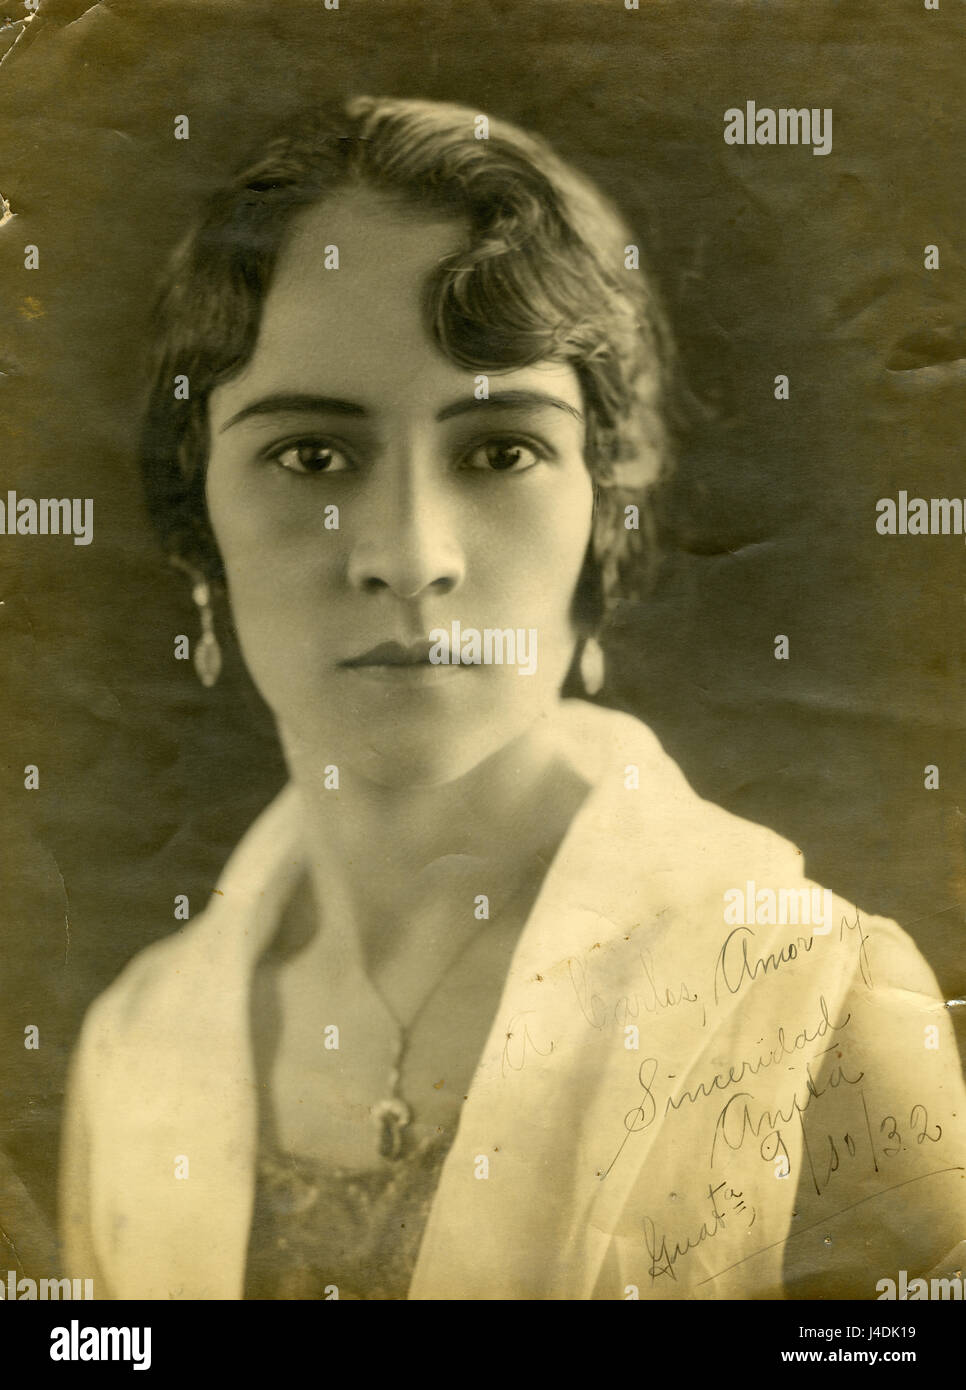 Antique 1932 photograph, a beautiful woman from Guatemala, with inscription. SOURCE: ORIGINAL ENGRAVING. - Stock Image